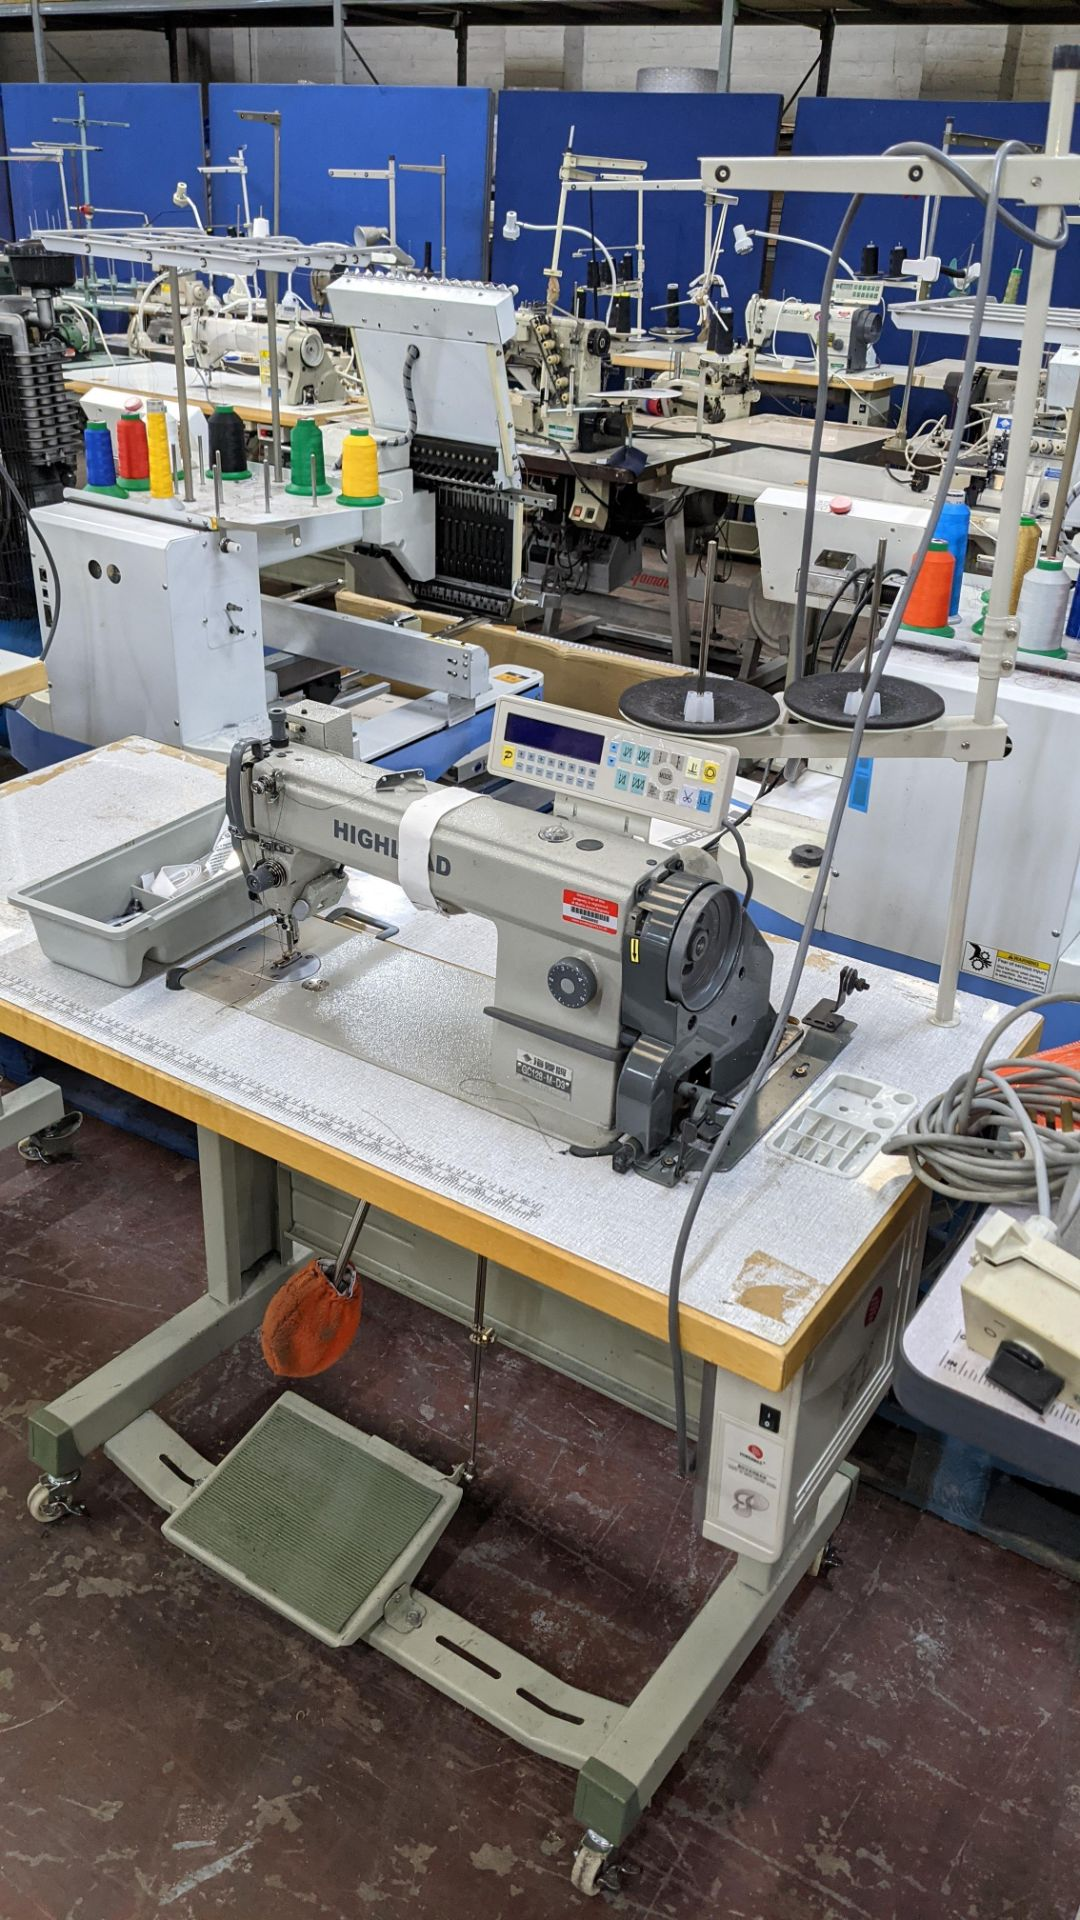 Highlead model GC128-M-D3 sewing machine - Image 4 of 18